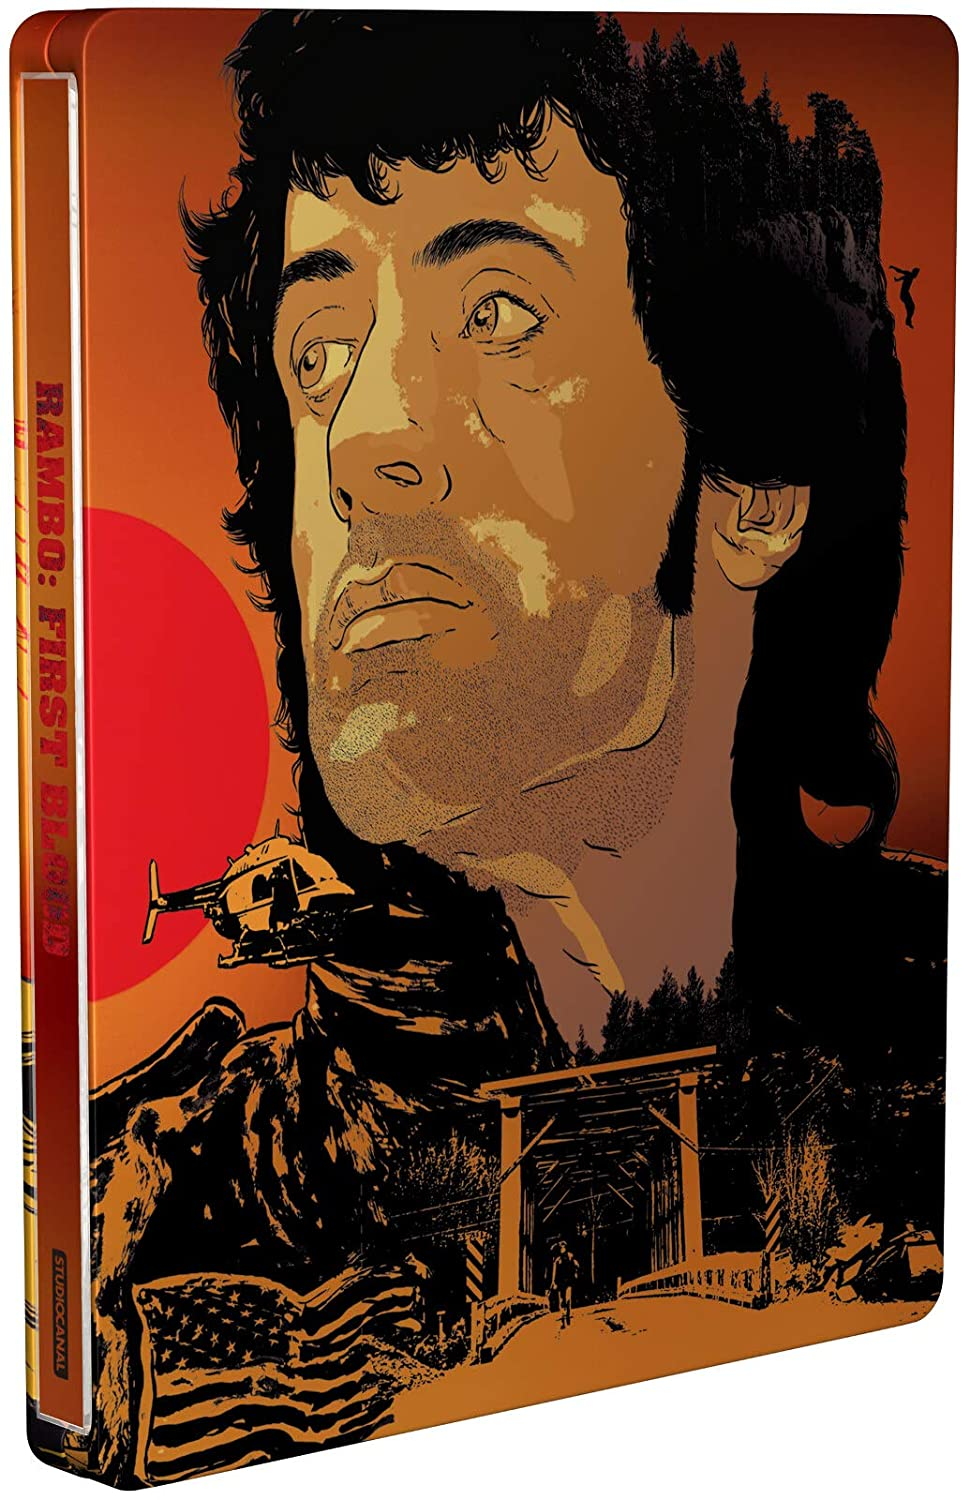 Rambo First Blood 4K Ultra HD Limited Edition Steelbook / Import / Includes Blu Ray: Amazon.es: Cine y Series TV